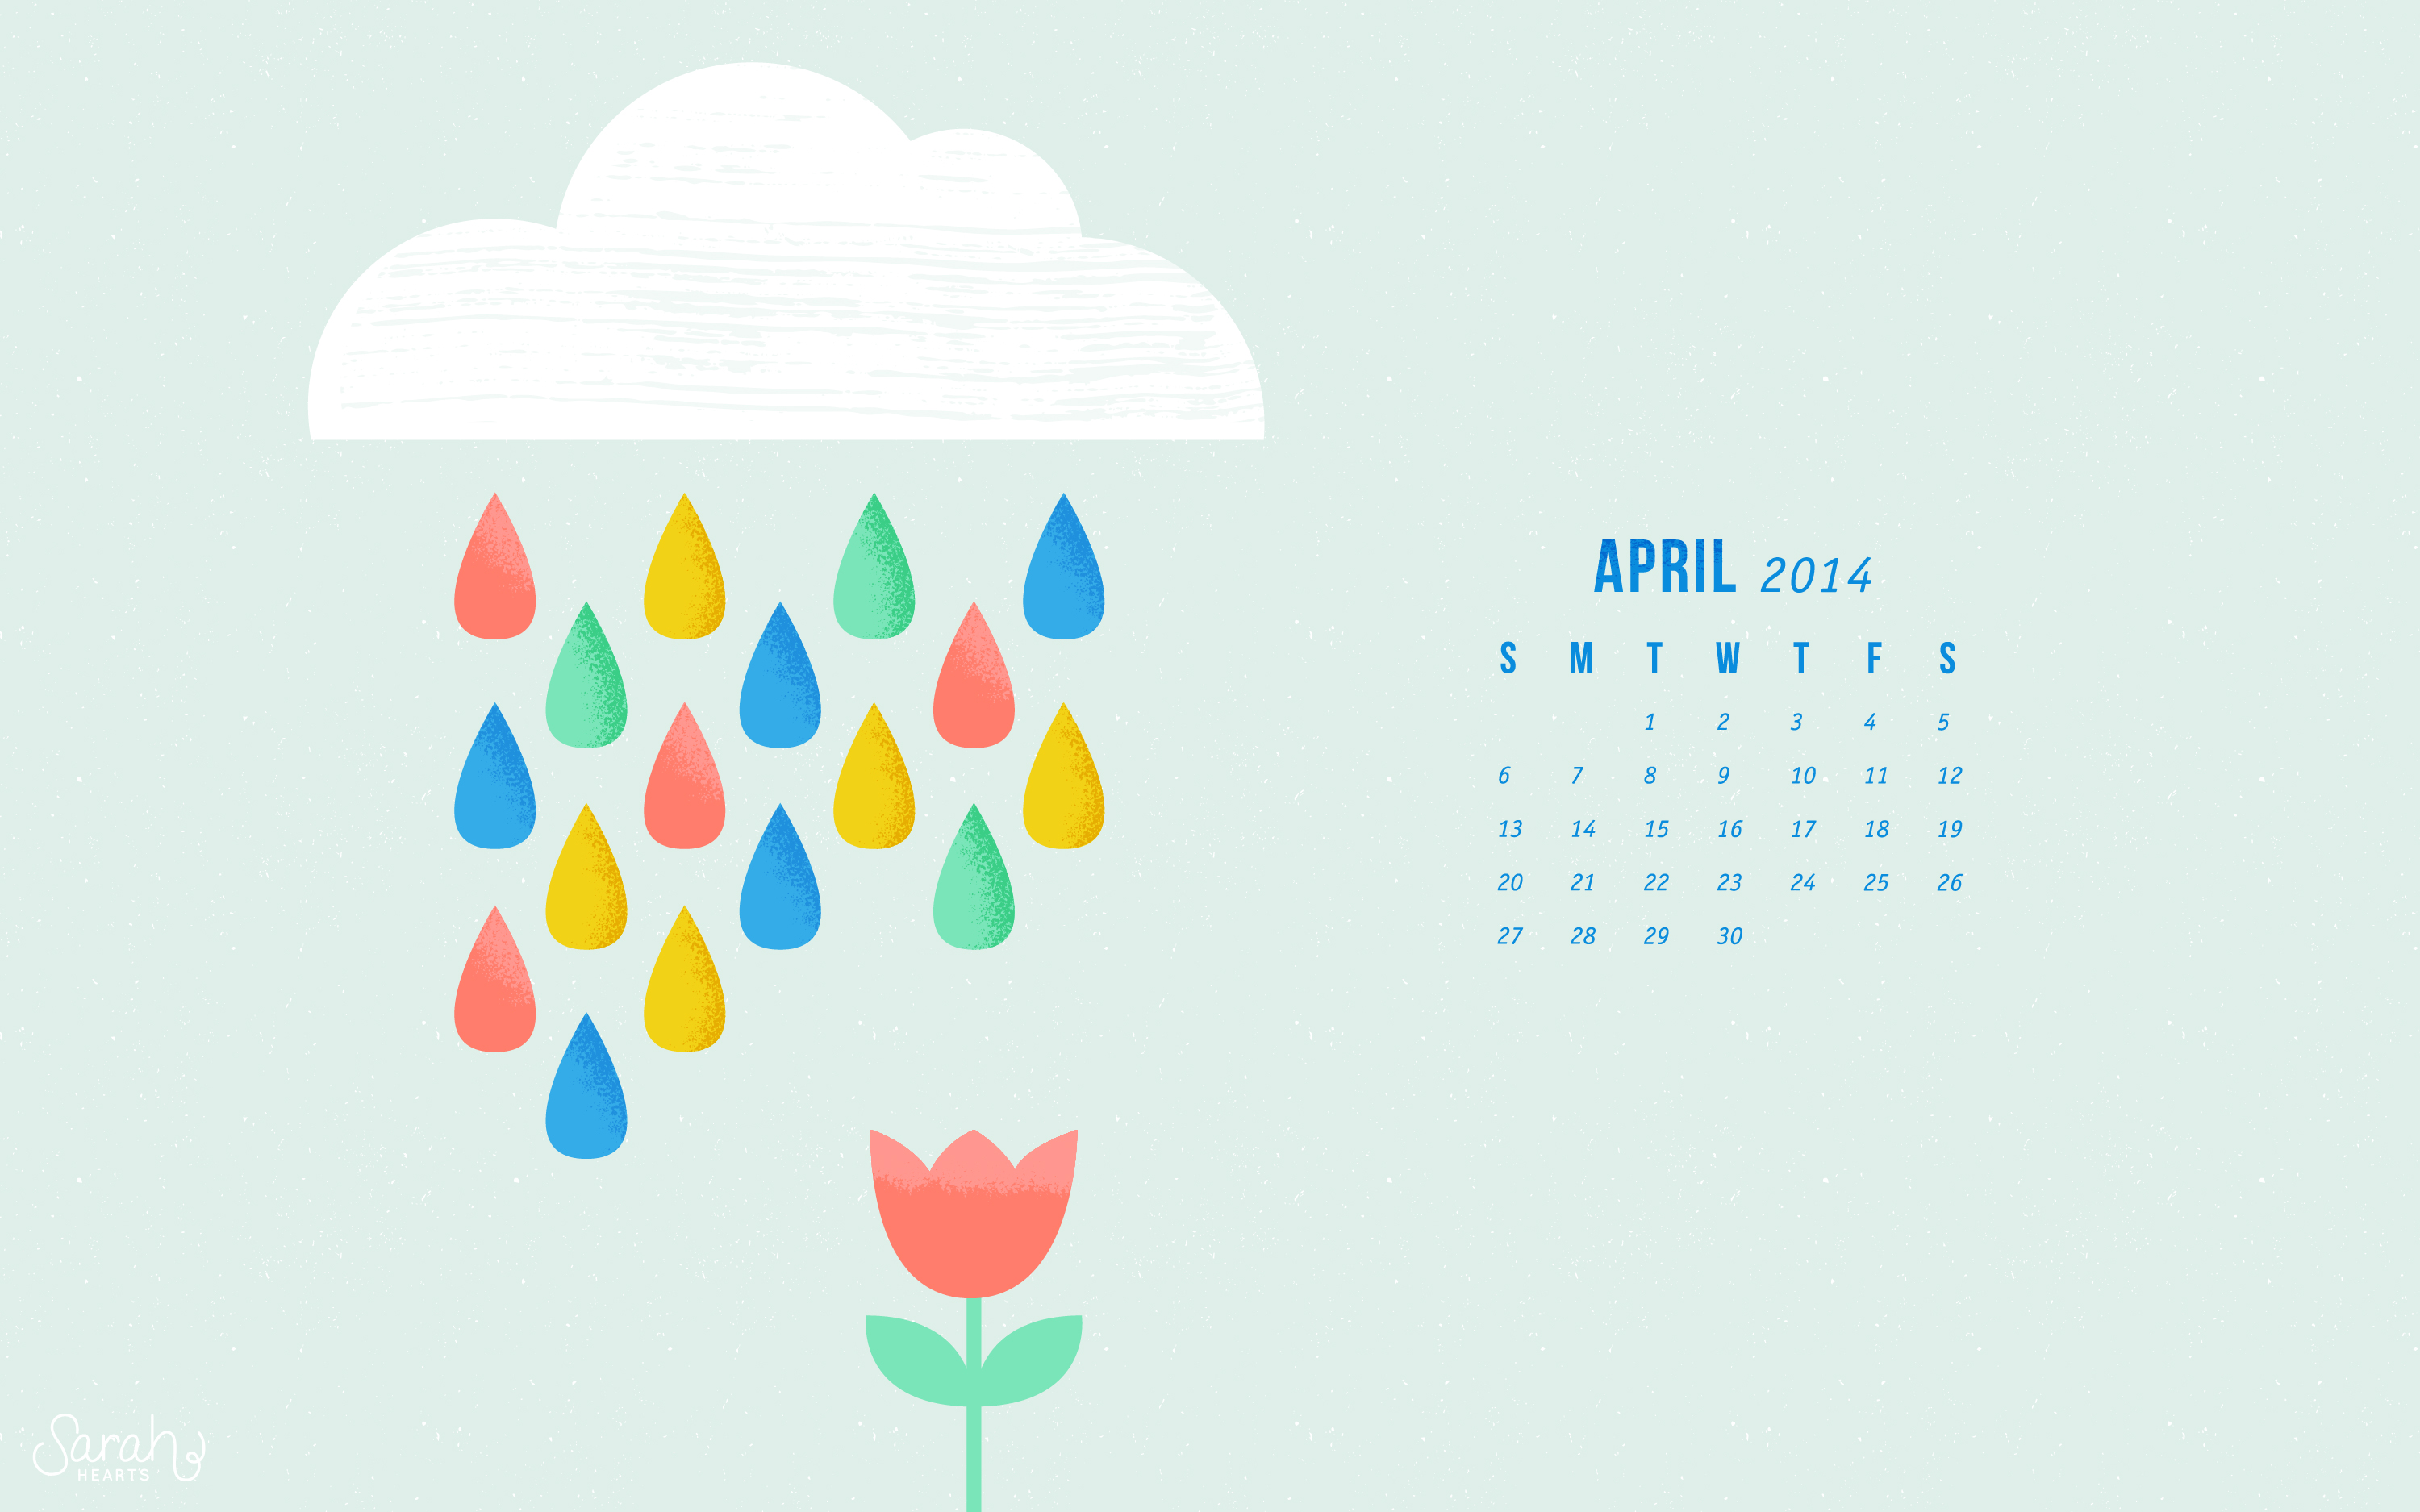 1440 x 900 1440 x 900 with calendar 1440 x 900 with quote 3000x1875